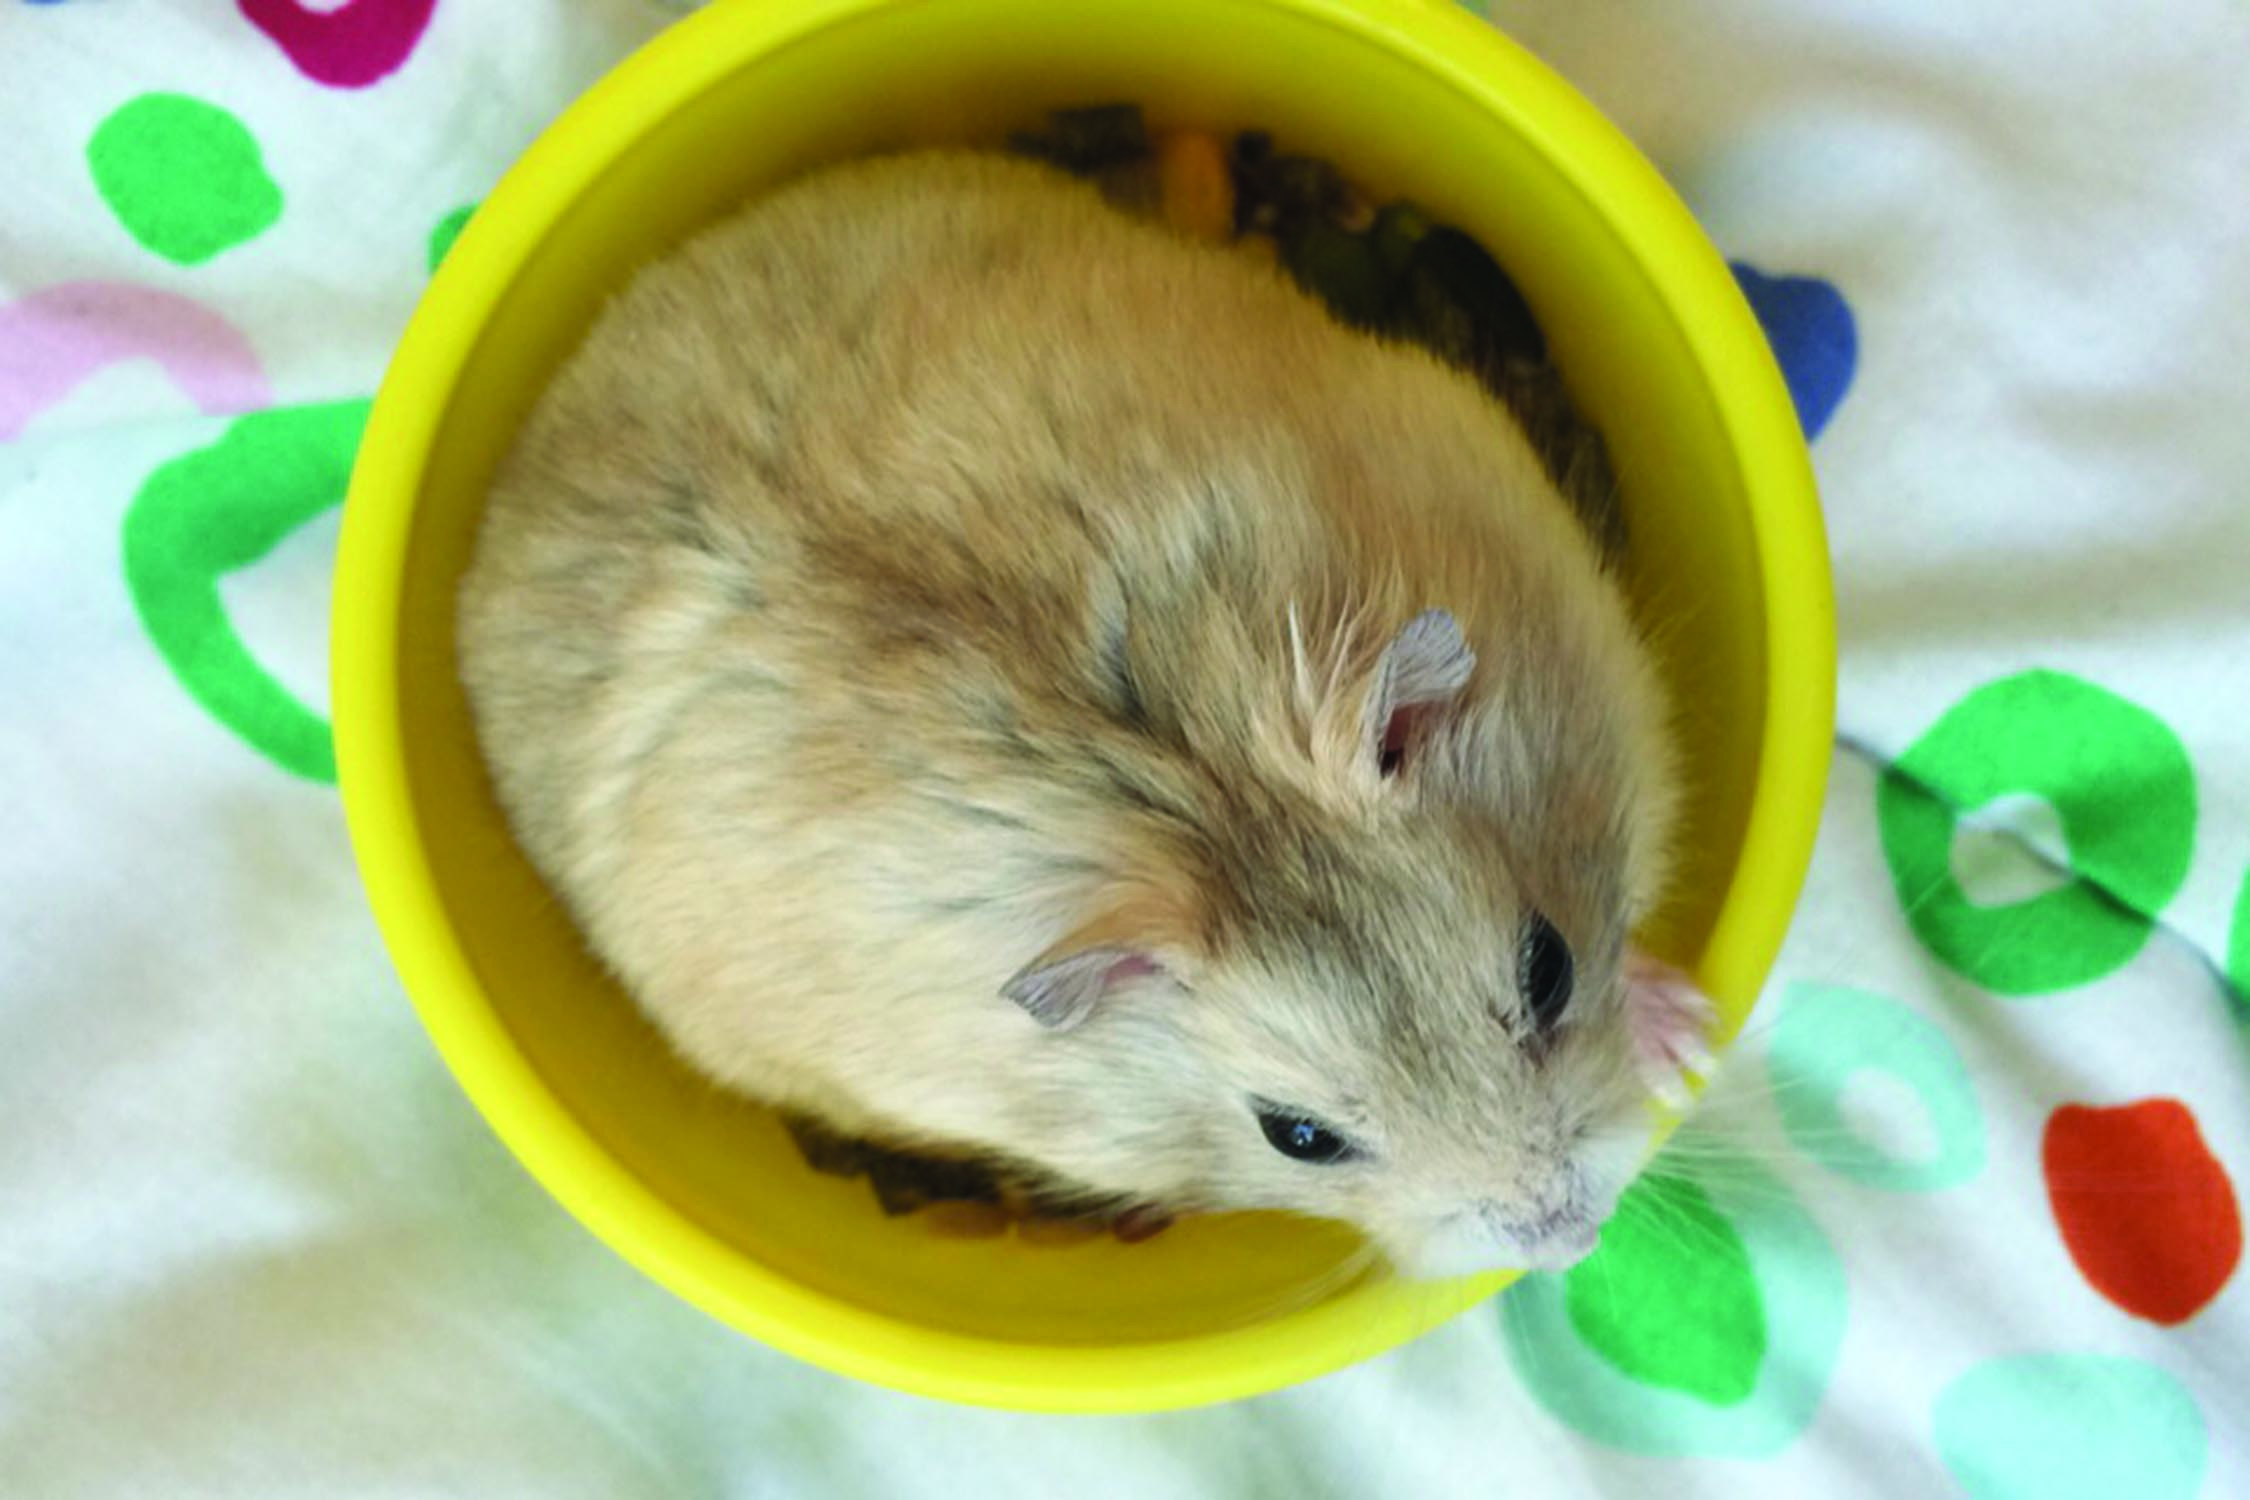 Glen Coco, a Syberian dwarf hamster, sits in his food bowl as he experiences life in a dorm. Hamsters along with any furry pets are banned from on-campus housing. Photo courtesy of anonymous pet owner.